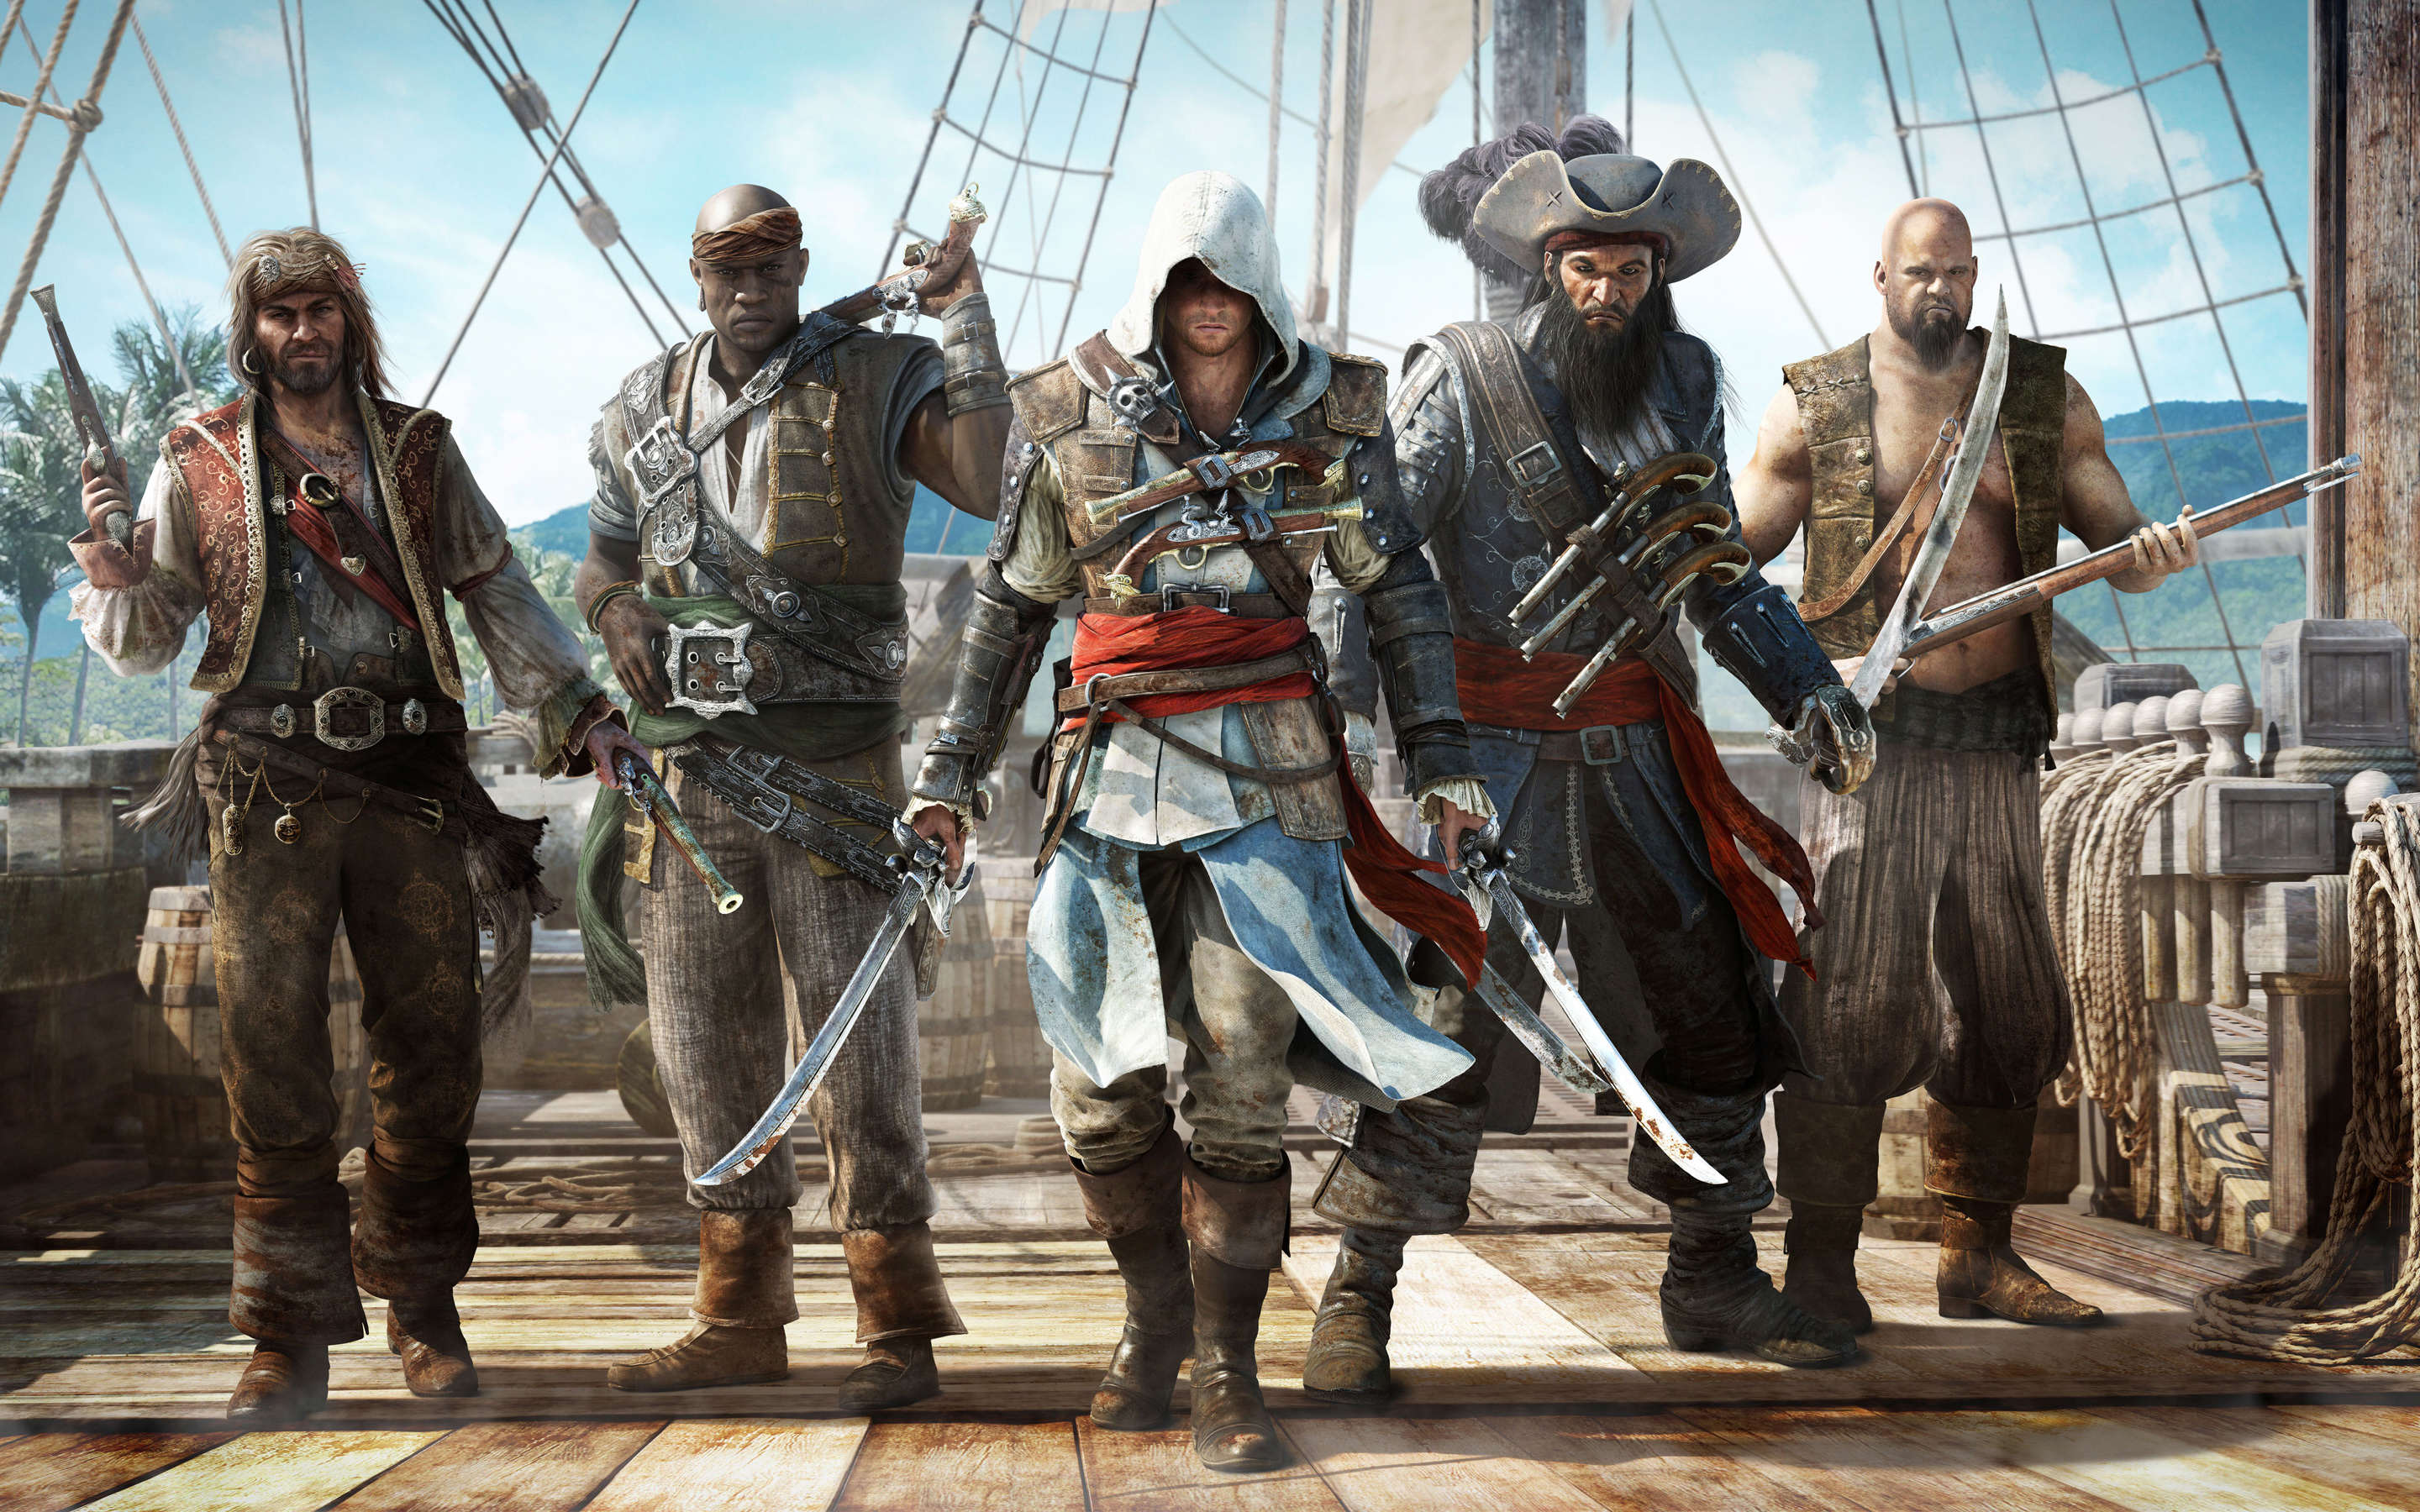 Major Pirating Group Take A Year Off To Evaluate Impact On Sales assassins creed pirates